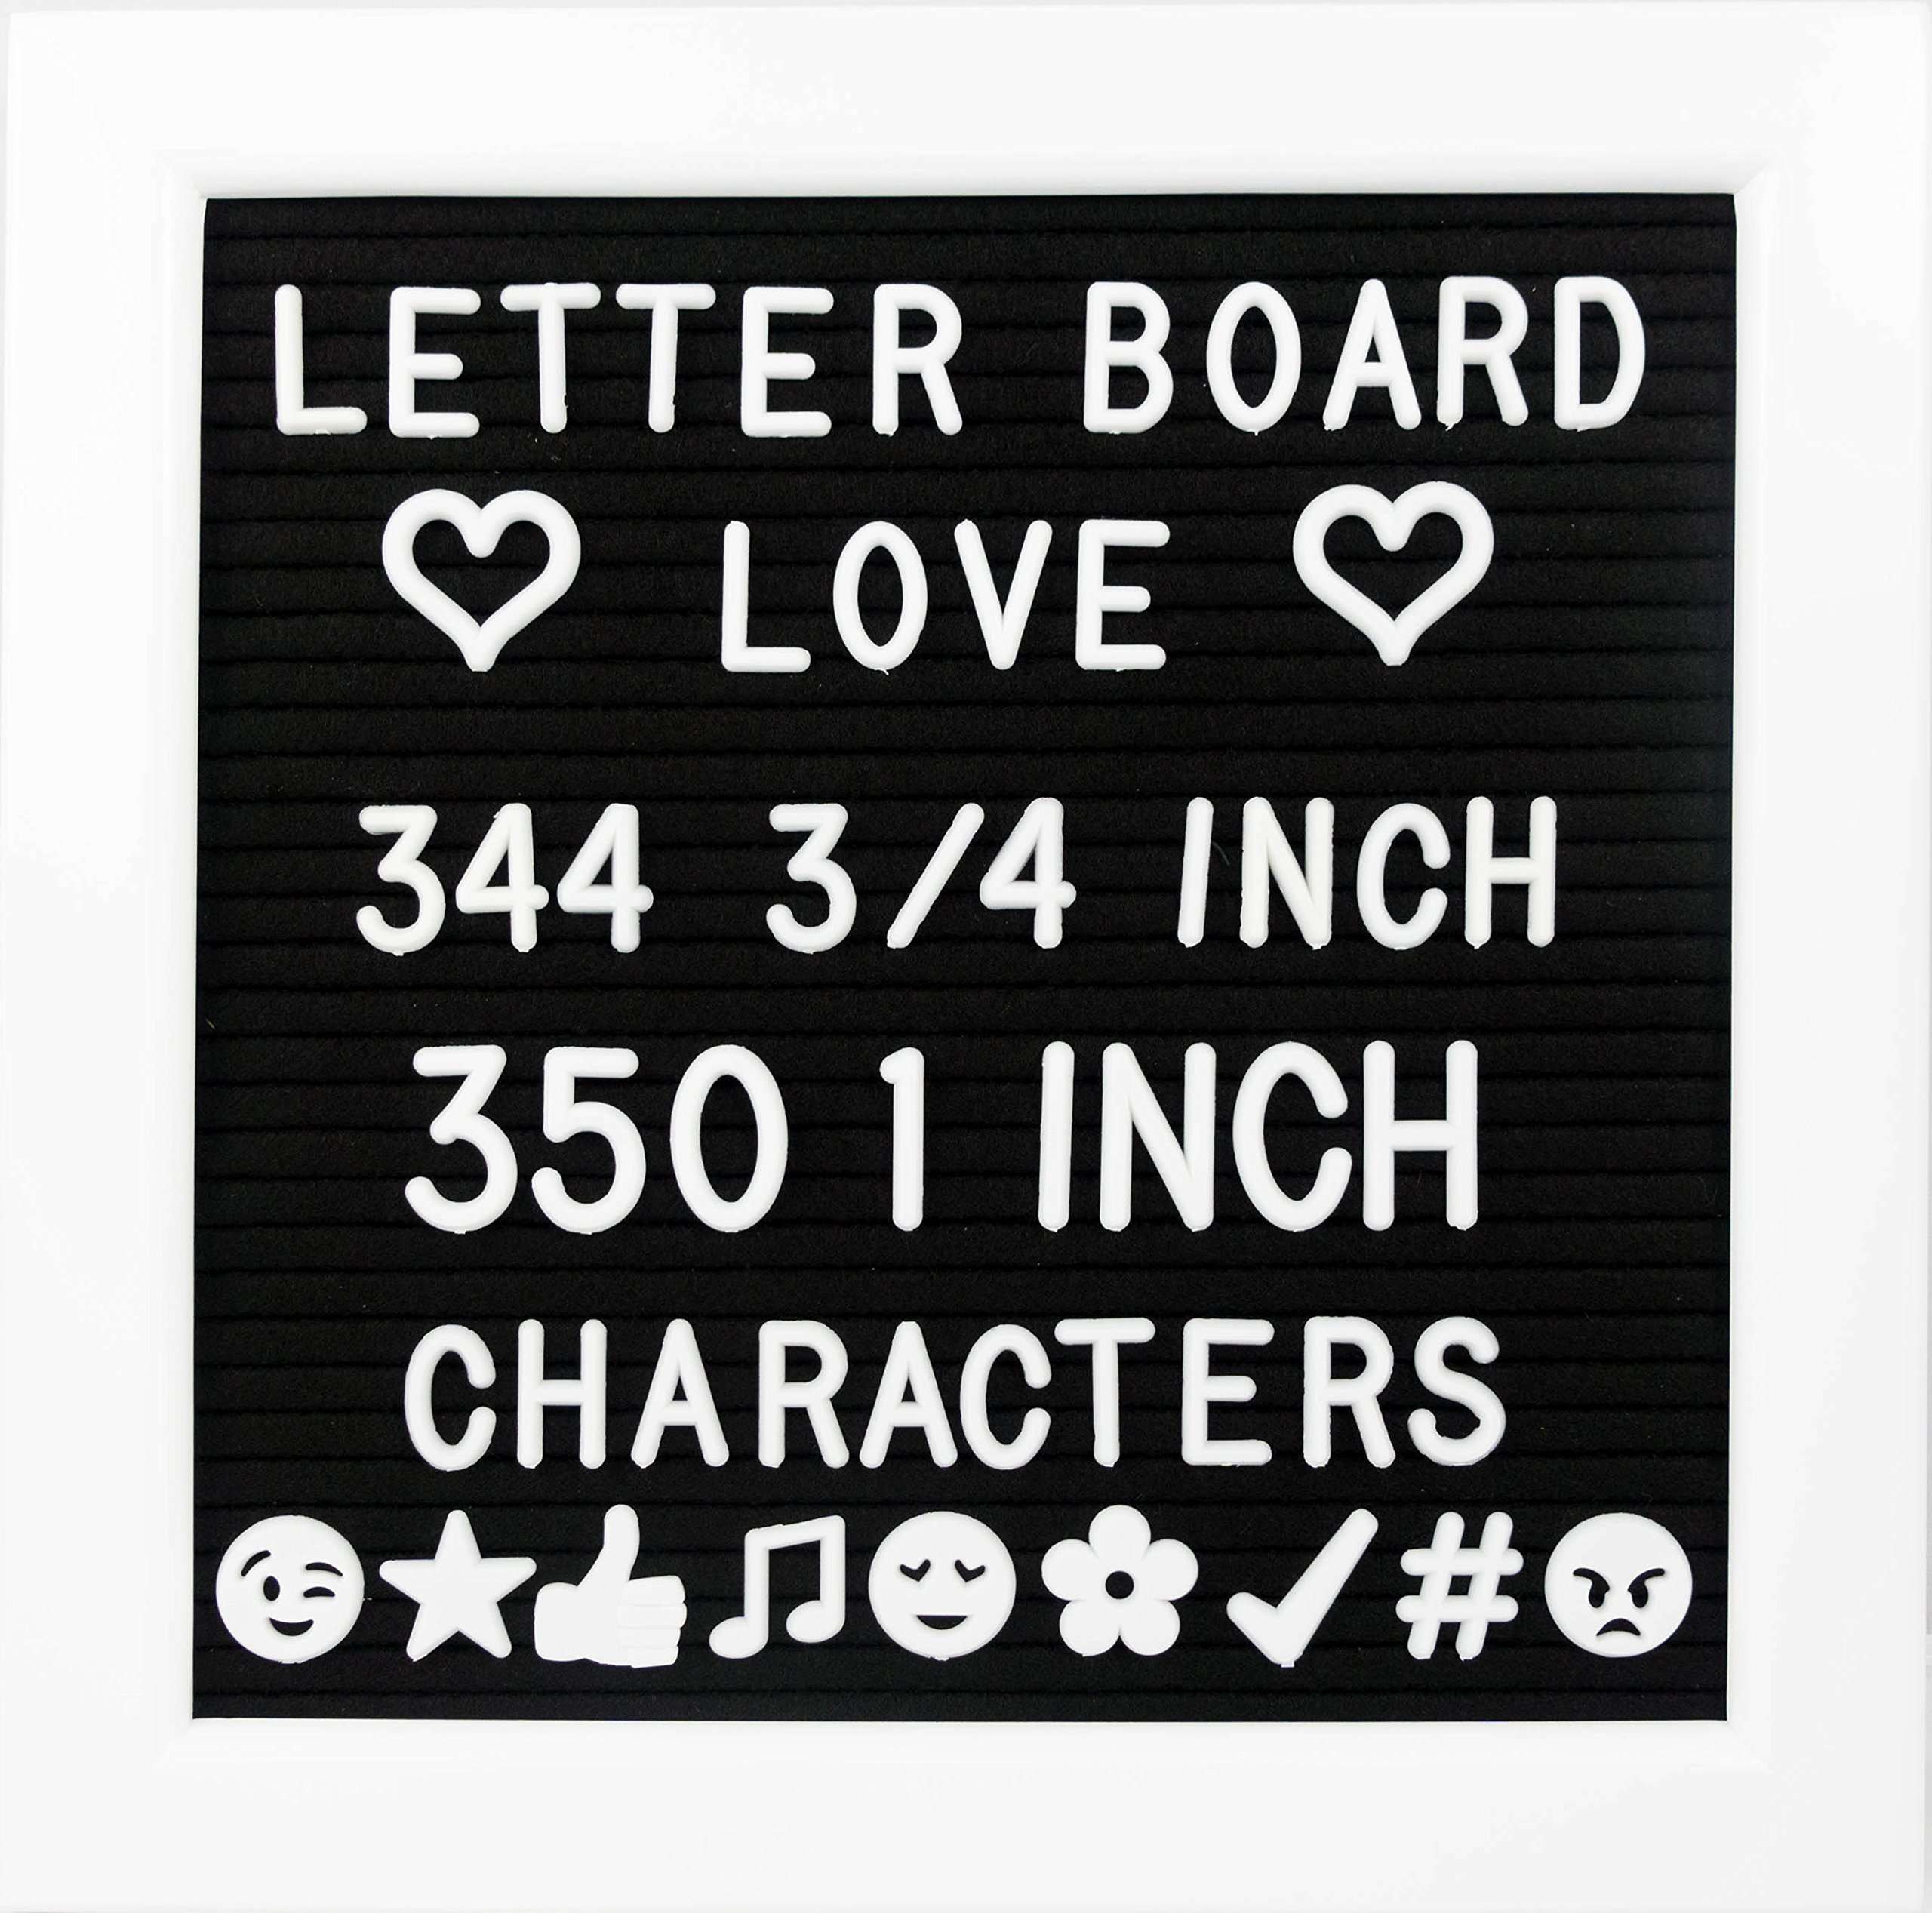 """10"""" x 10"""" Letter Board with White Frame & Black Felt, 694 Letters + Special Characters & Emojis, Two Canvas Letter Bags, and Plastic Stand."""